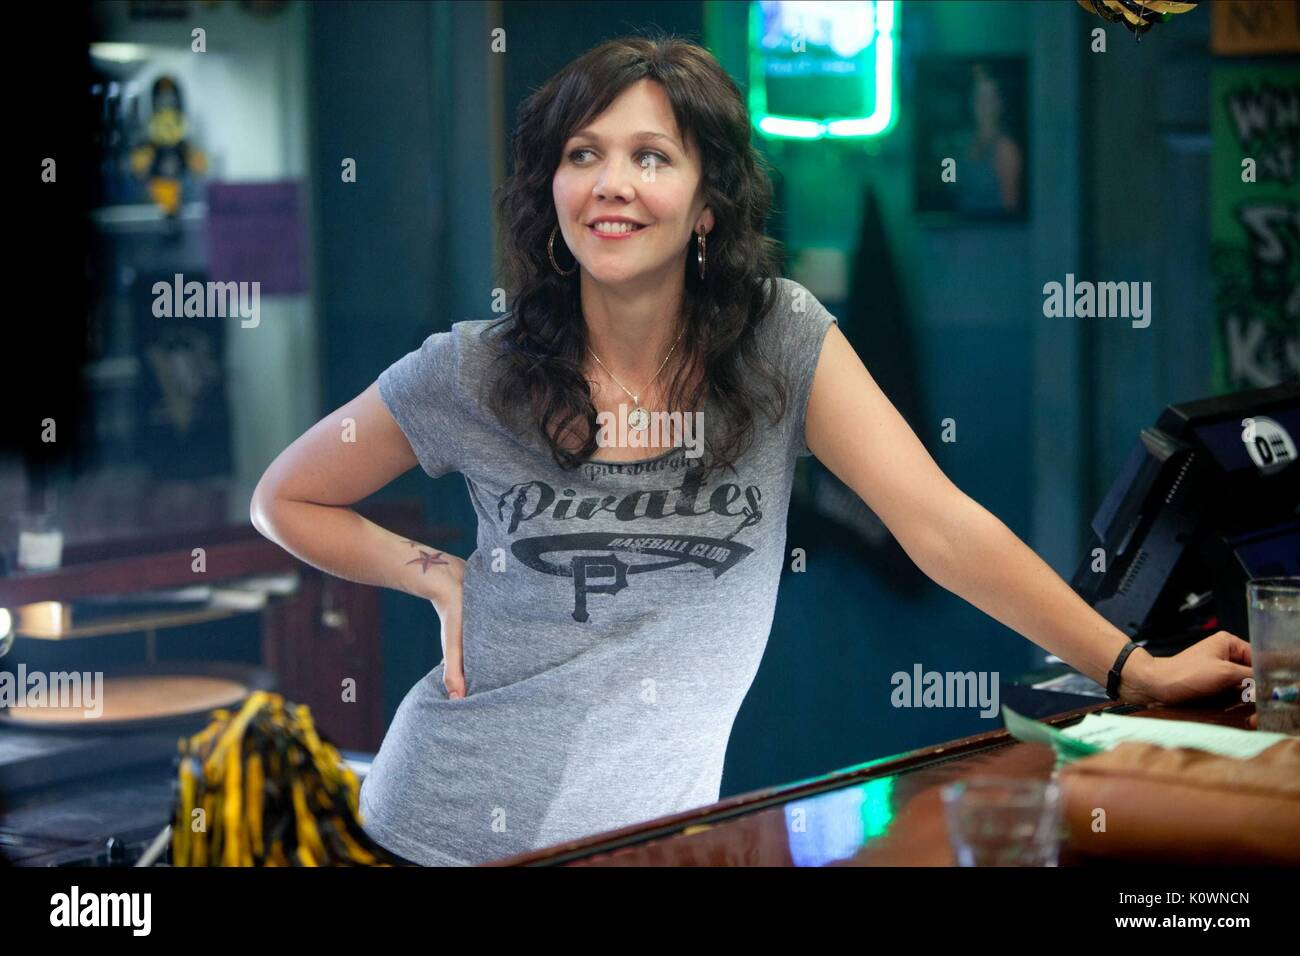 MAGGIE GYLLENHAAL WON'T BACK DOWN (2012) - Stock Image